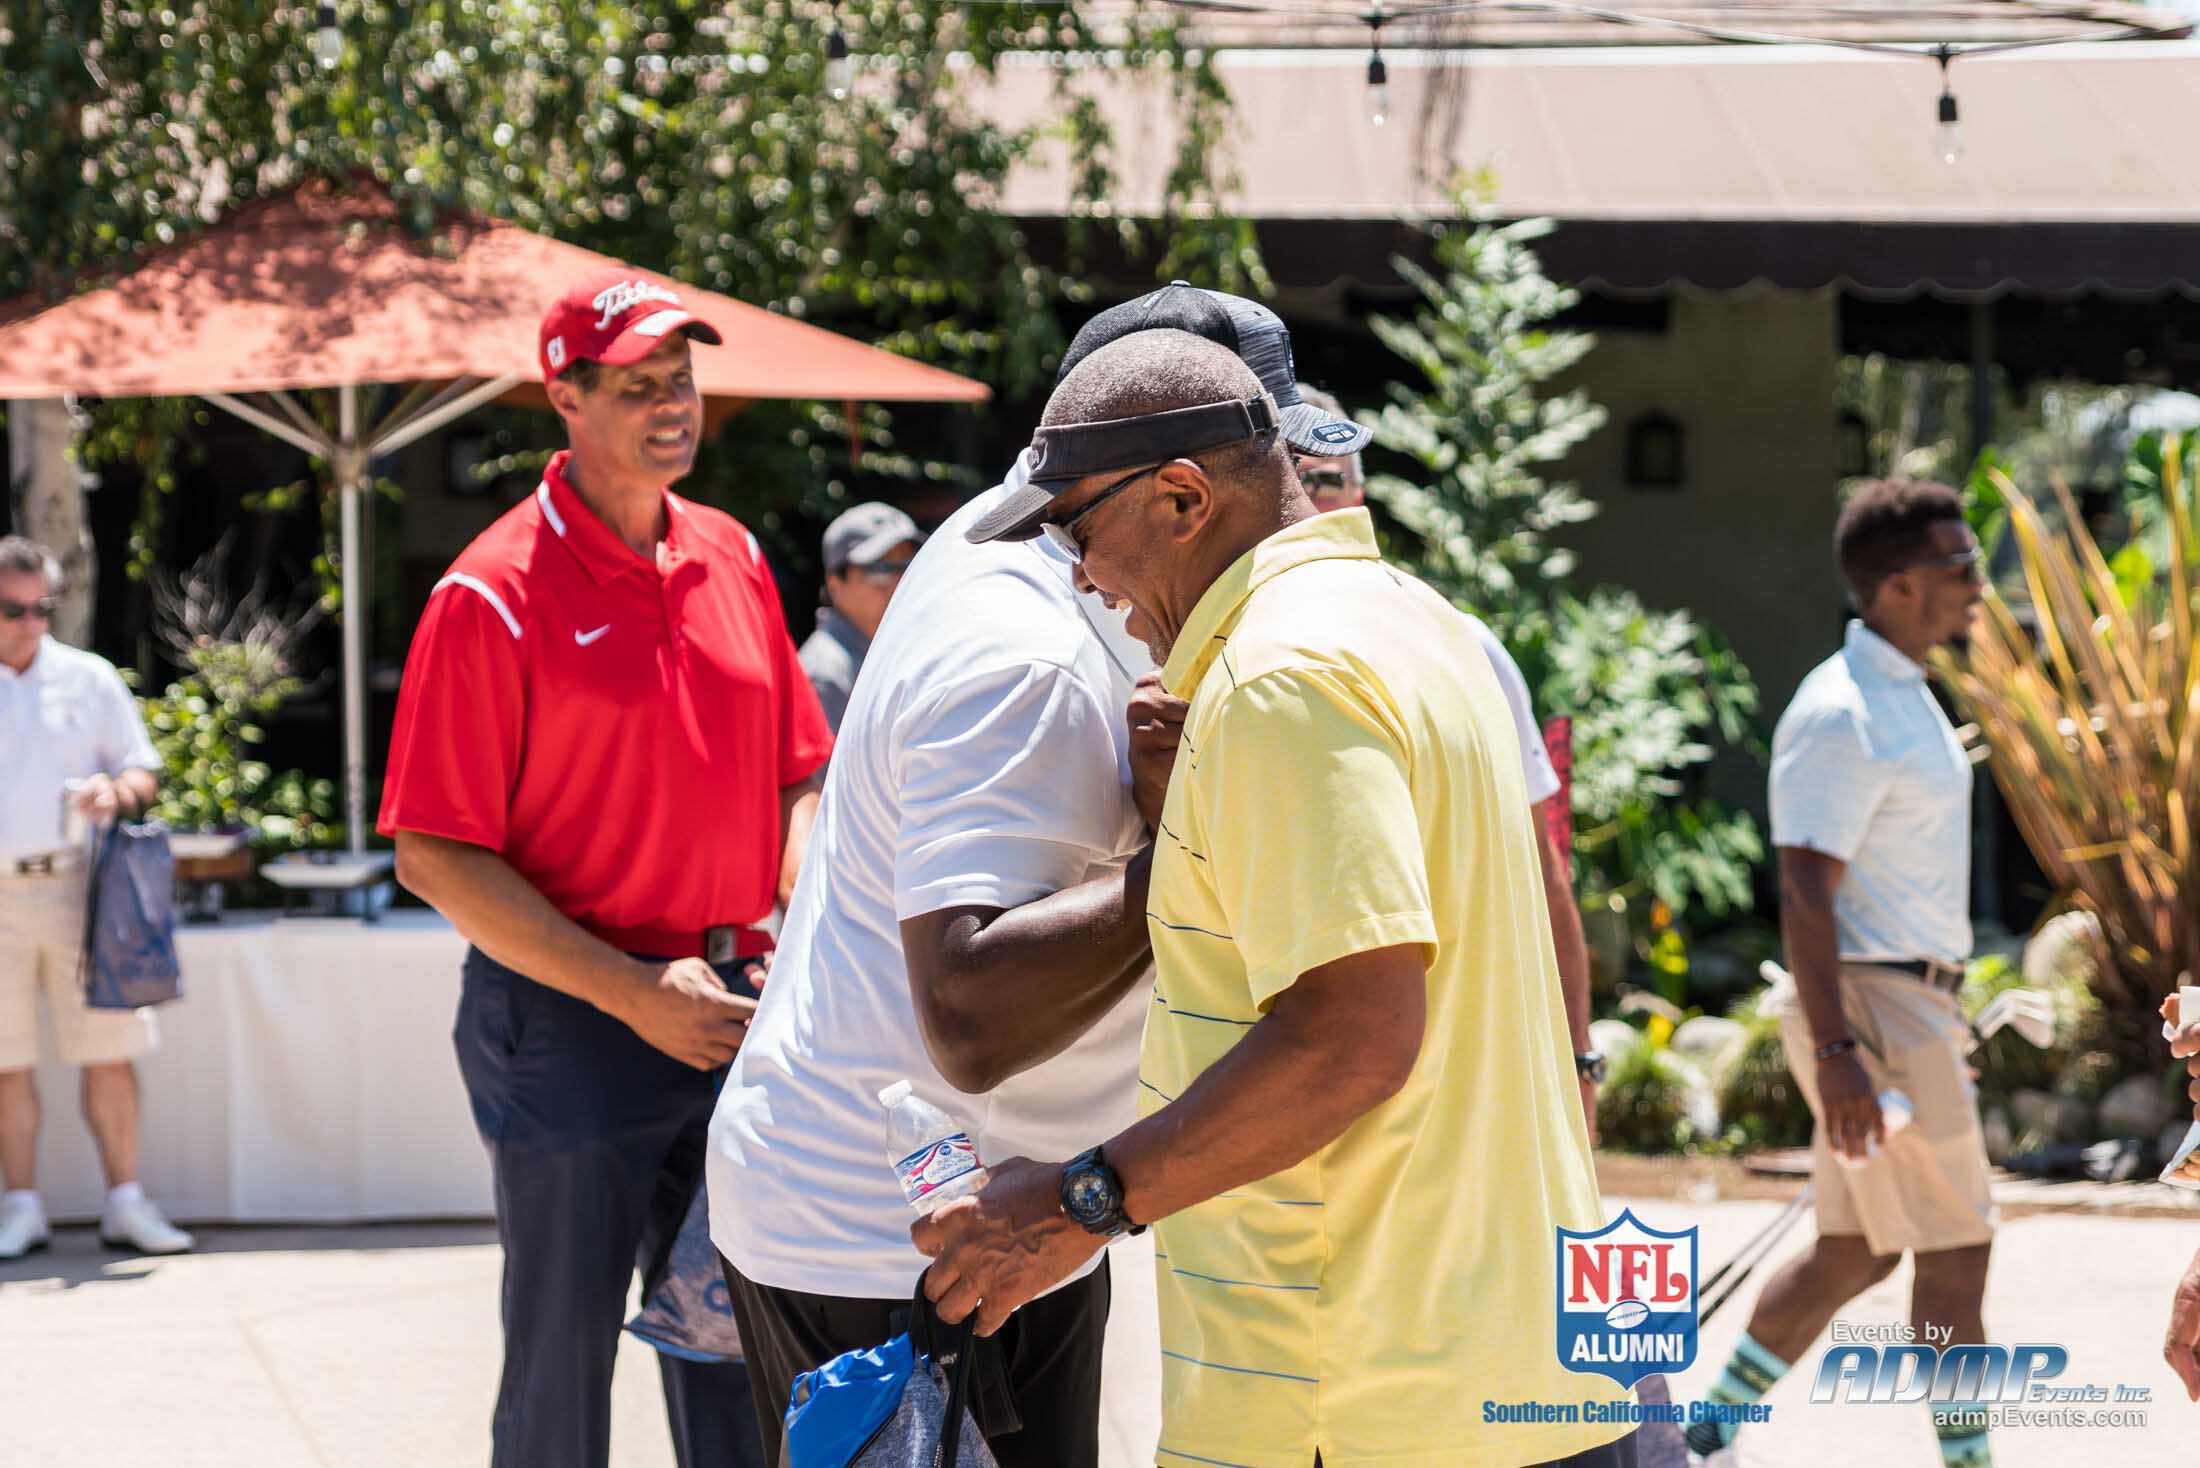 NFL Alumni Golf Tournament Pics 08_12_19-085